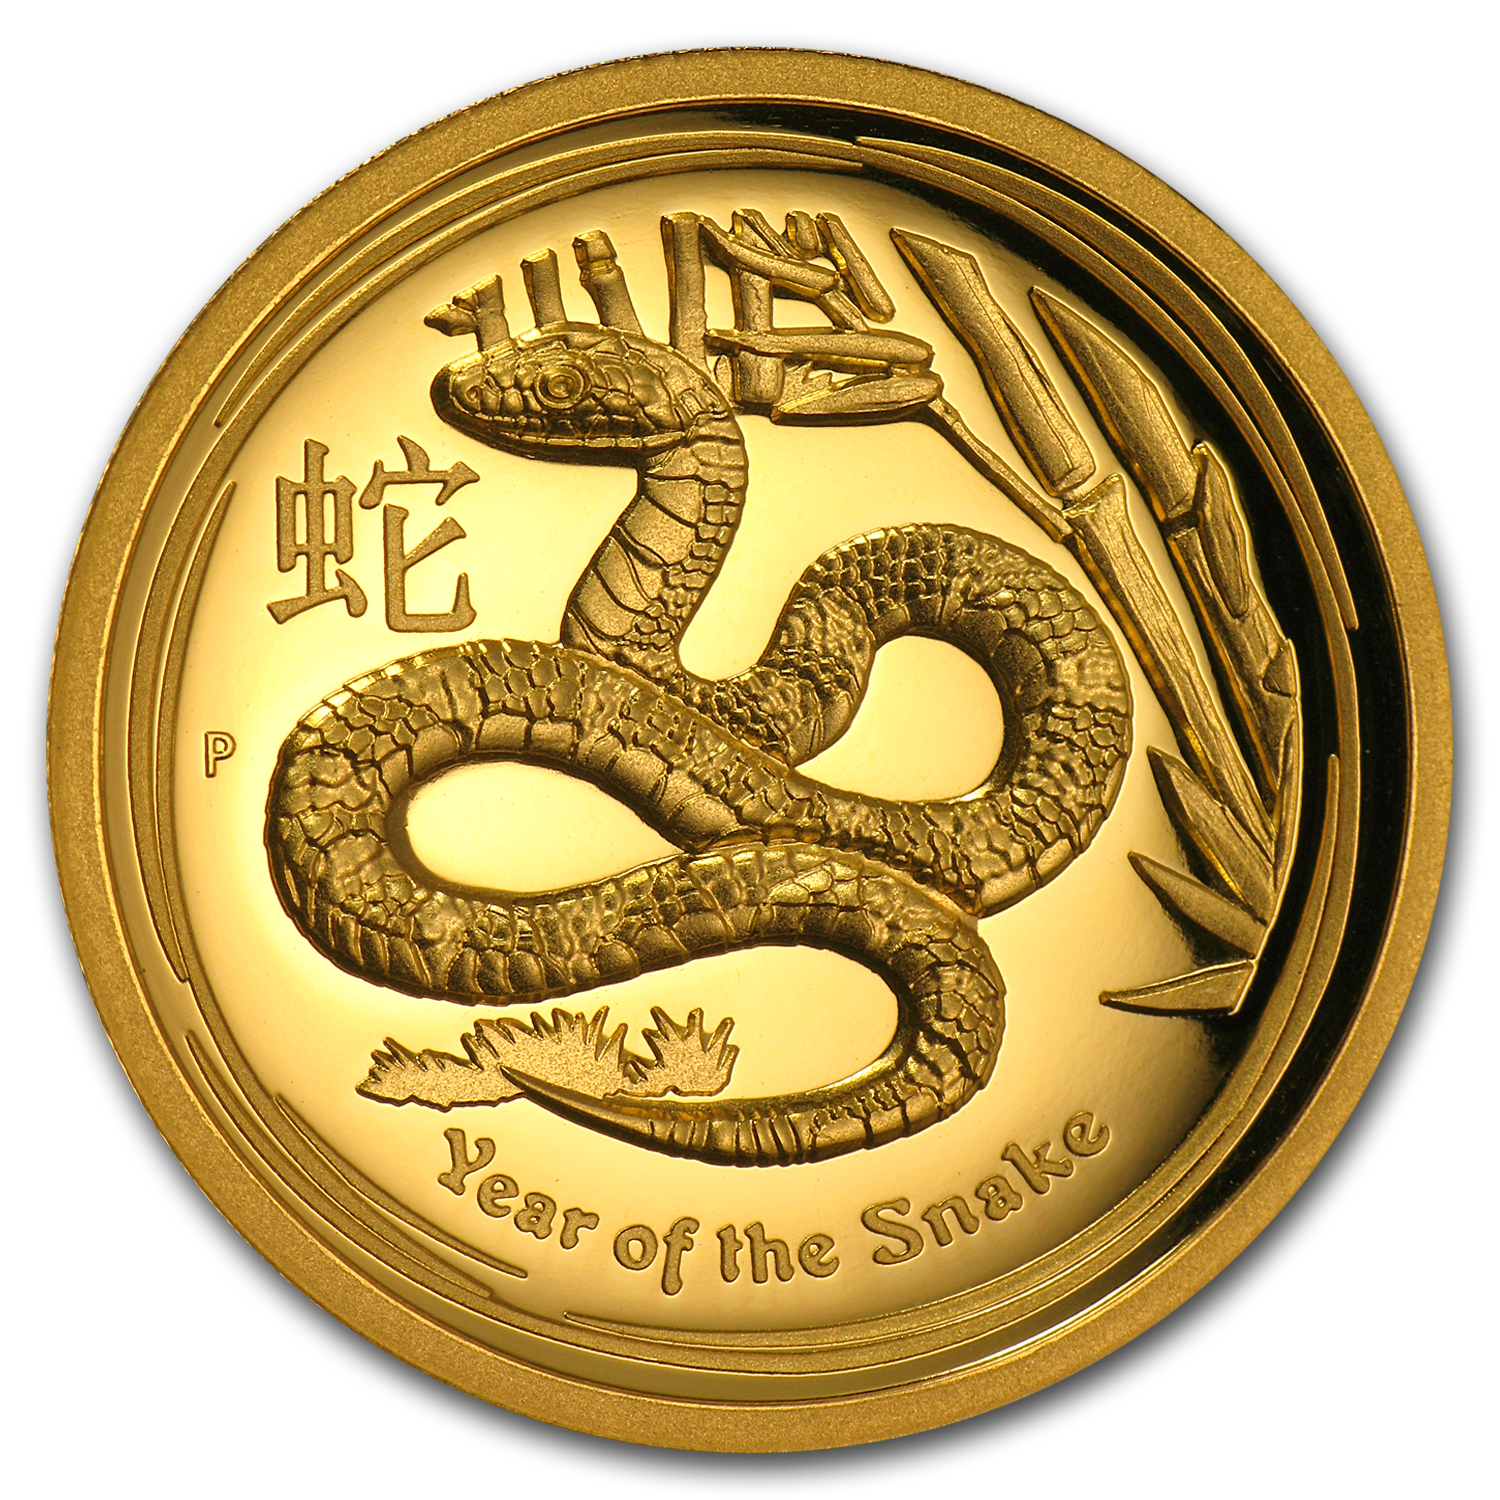 2013 1 oz Gold Lunar Year of the Snake Proof (UHR, Box & Coa)